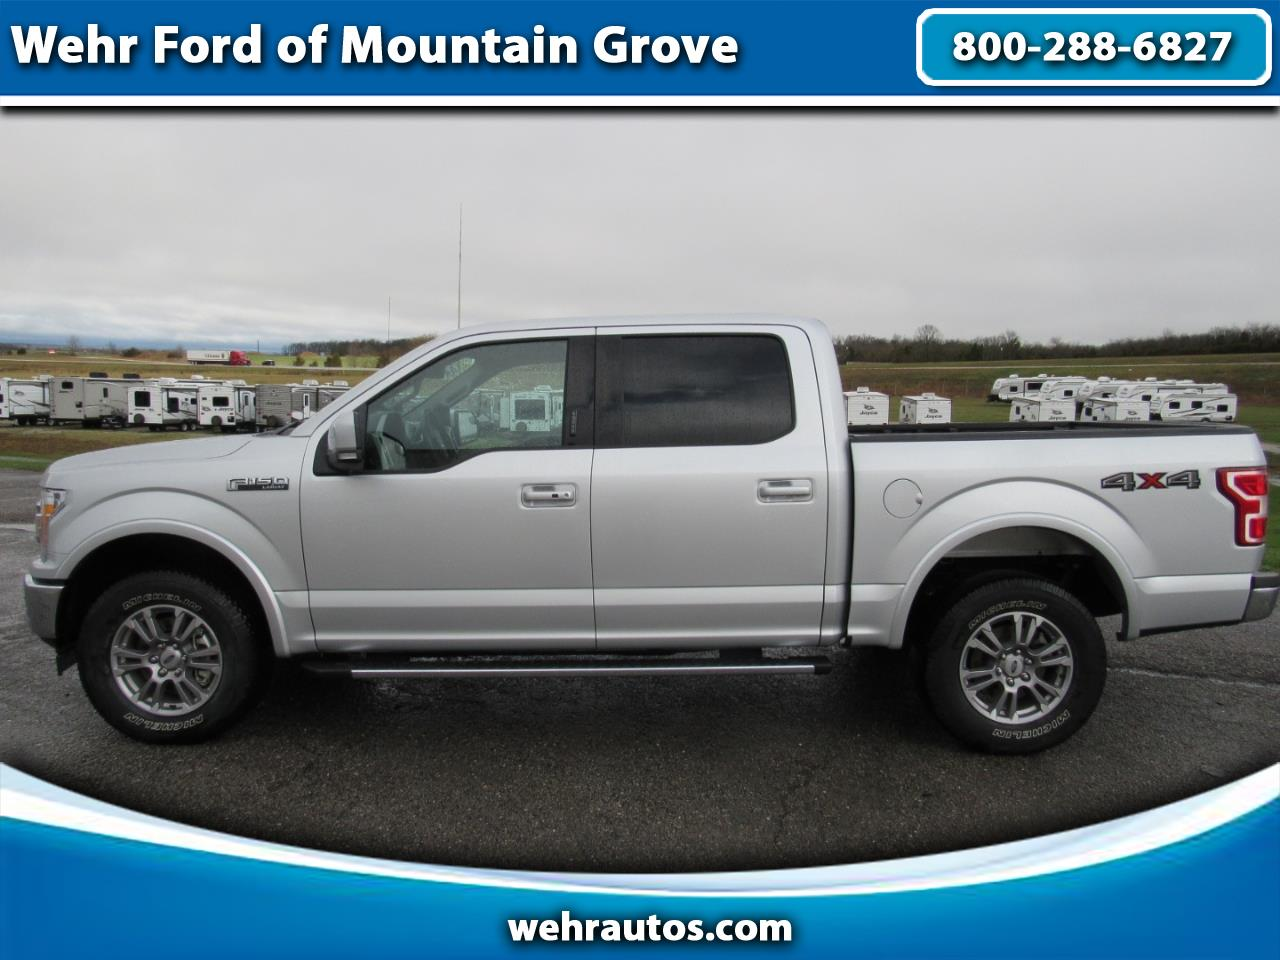 2018 Ford F-150 SuperCrew Lariat 4WD Crew Cab